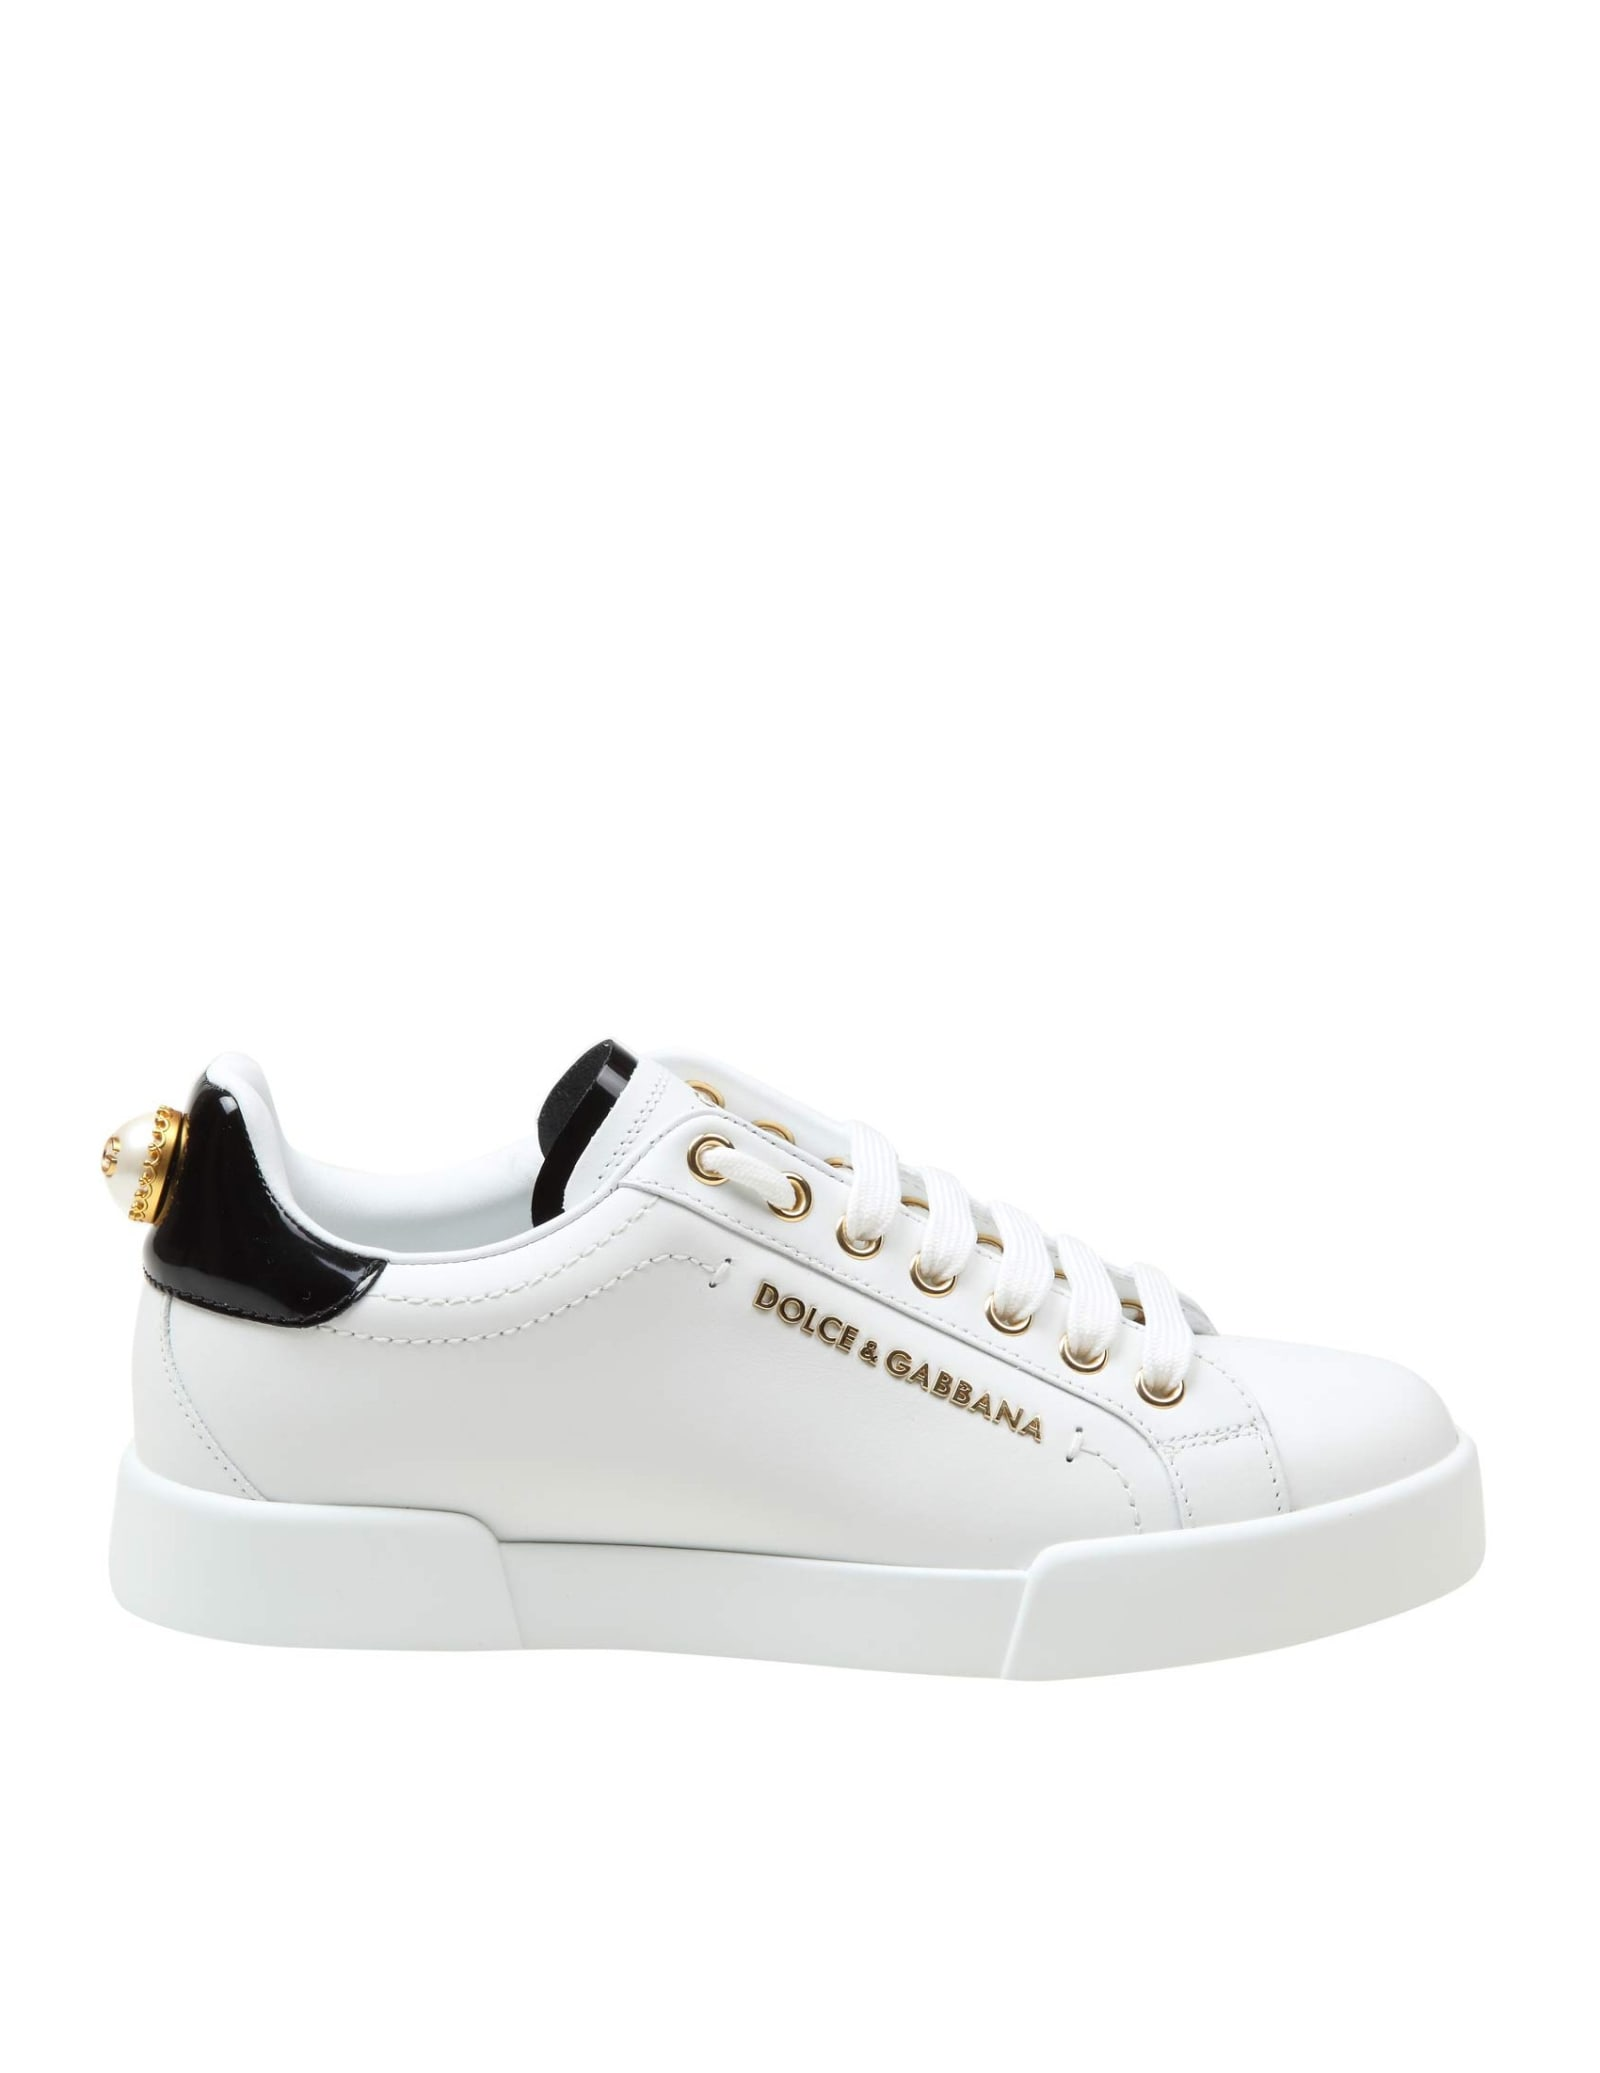 Dolce & Gabbana WHITE LEATHER SNEAKERS WOMAN WITH LOGO PEARL